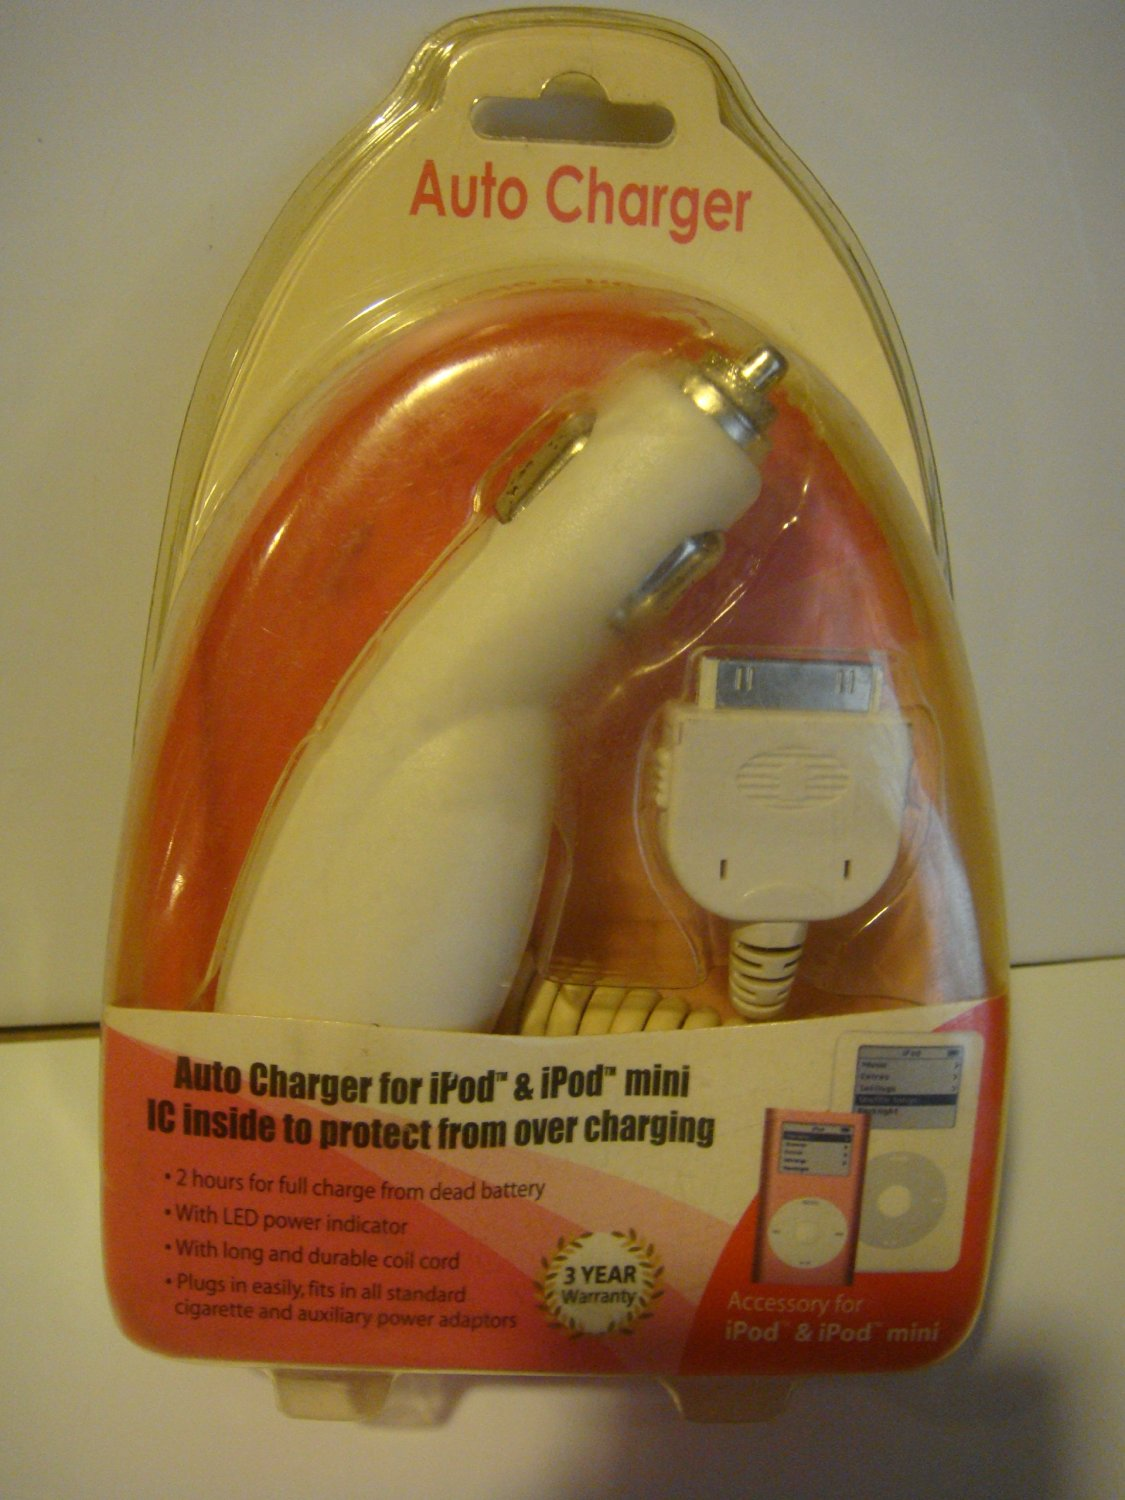 Auto Charger for iPod & iPod Mini